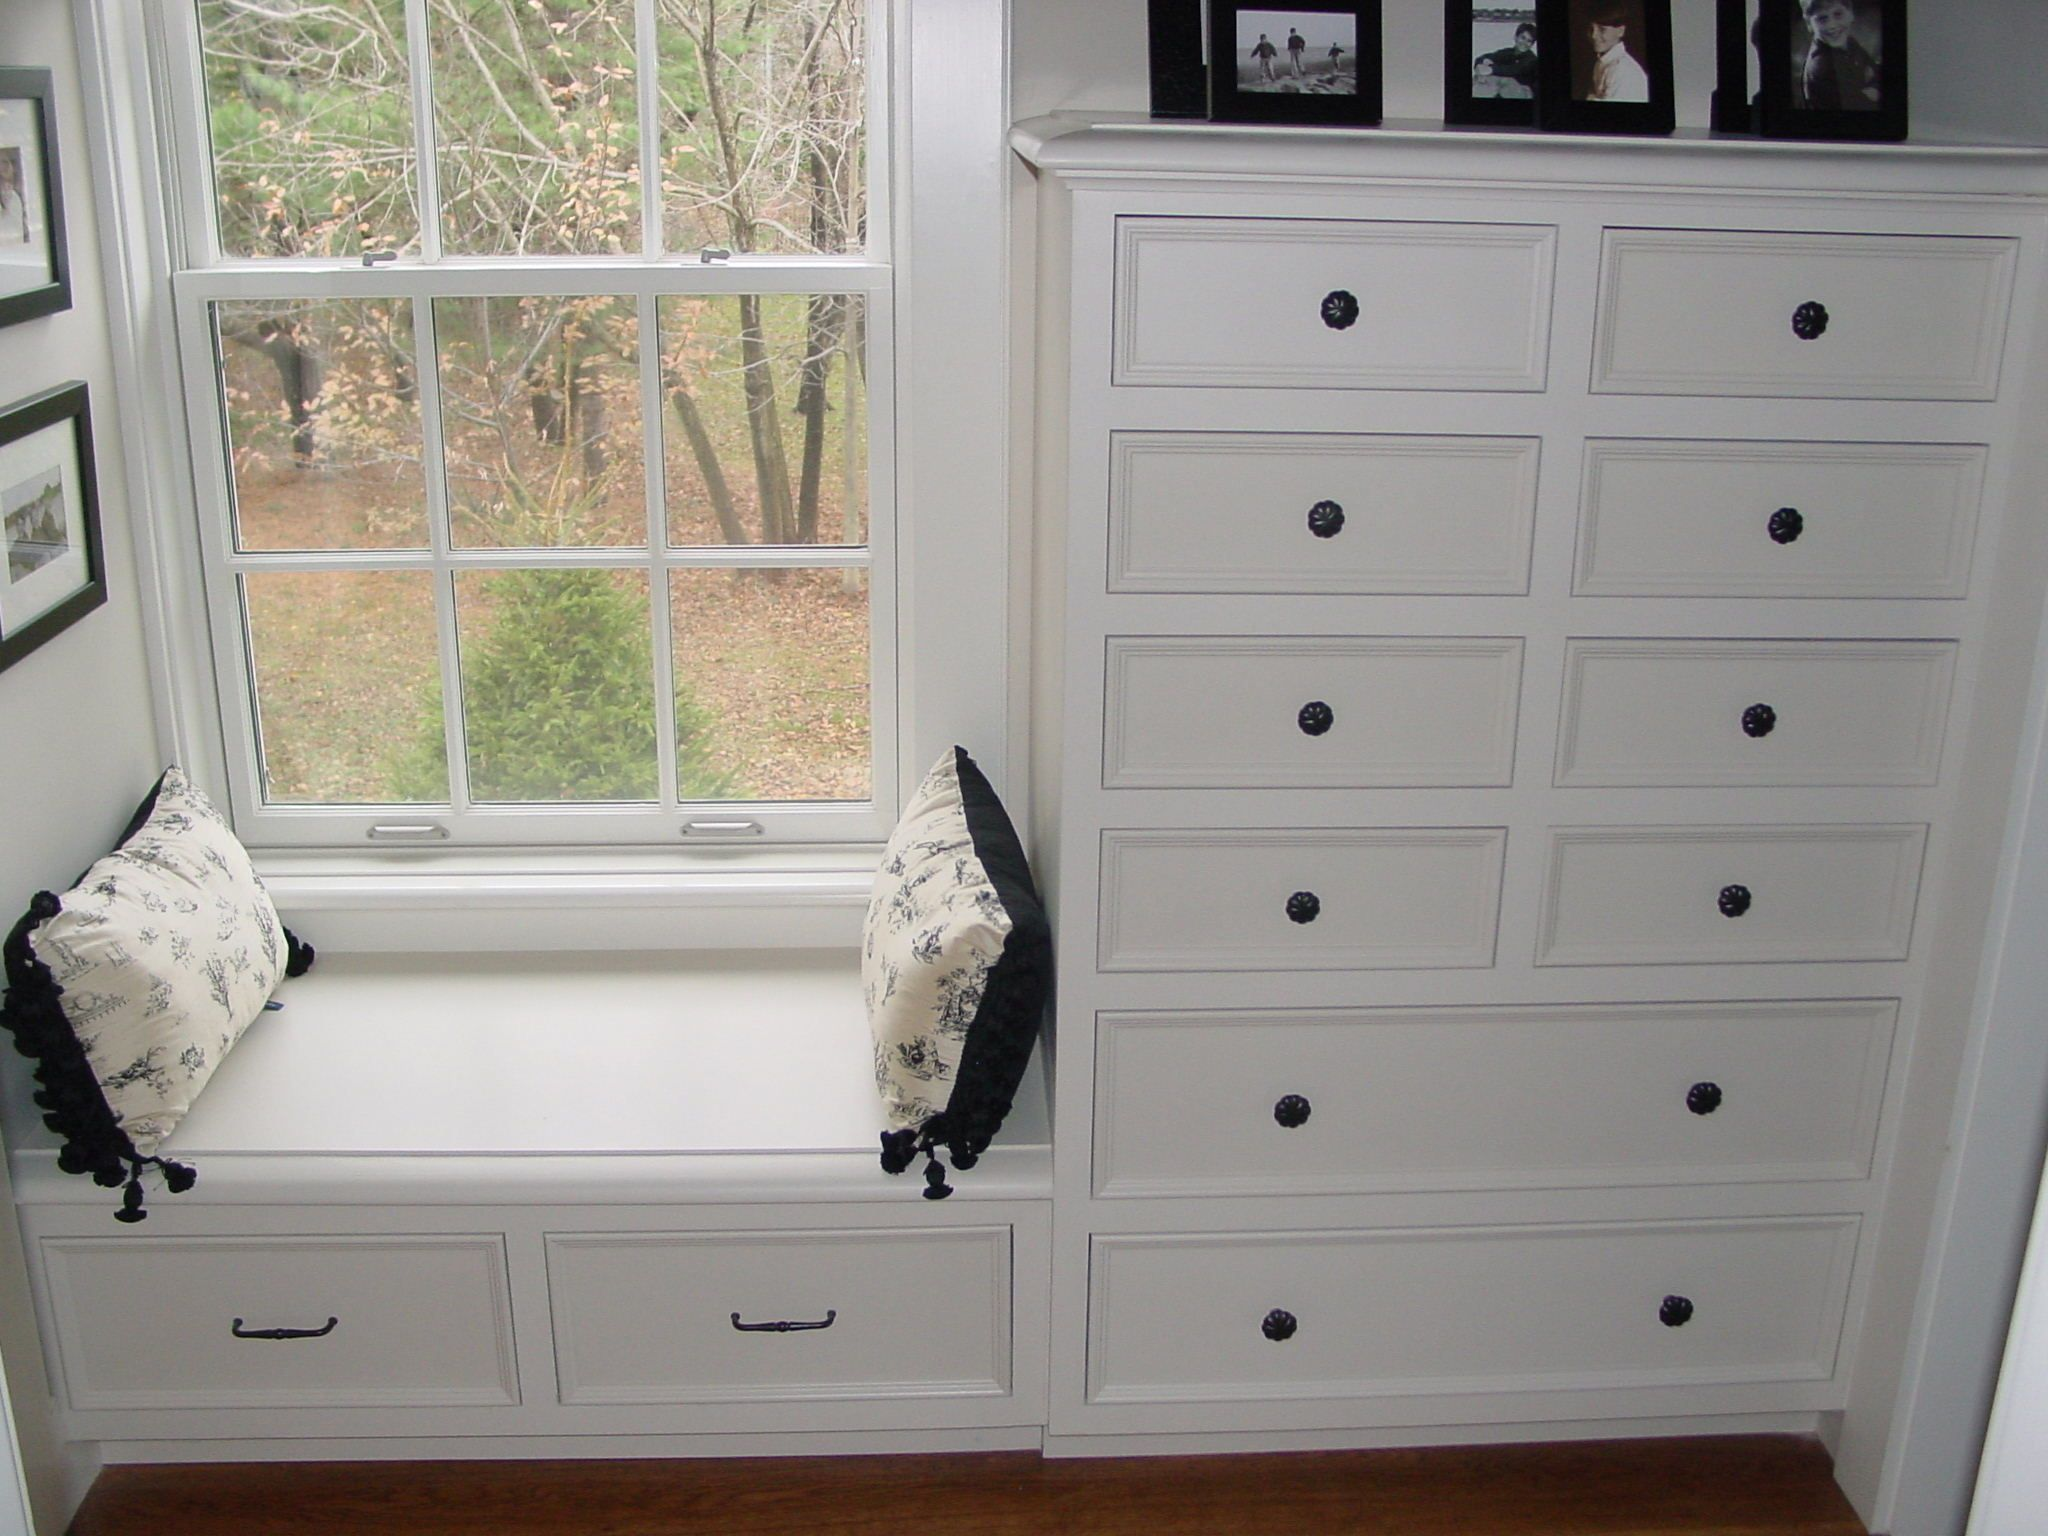 Built In Dresser With Window Seat